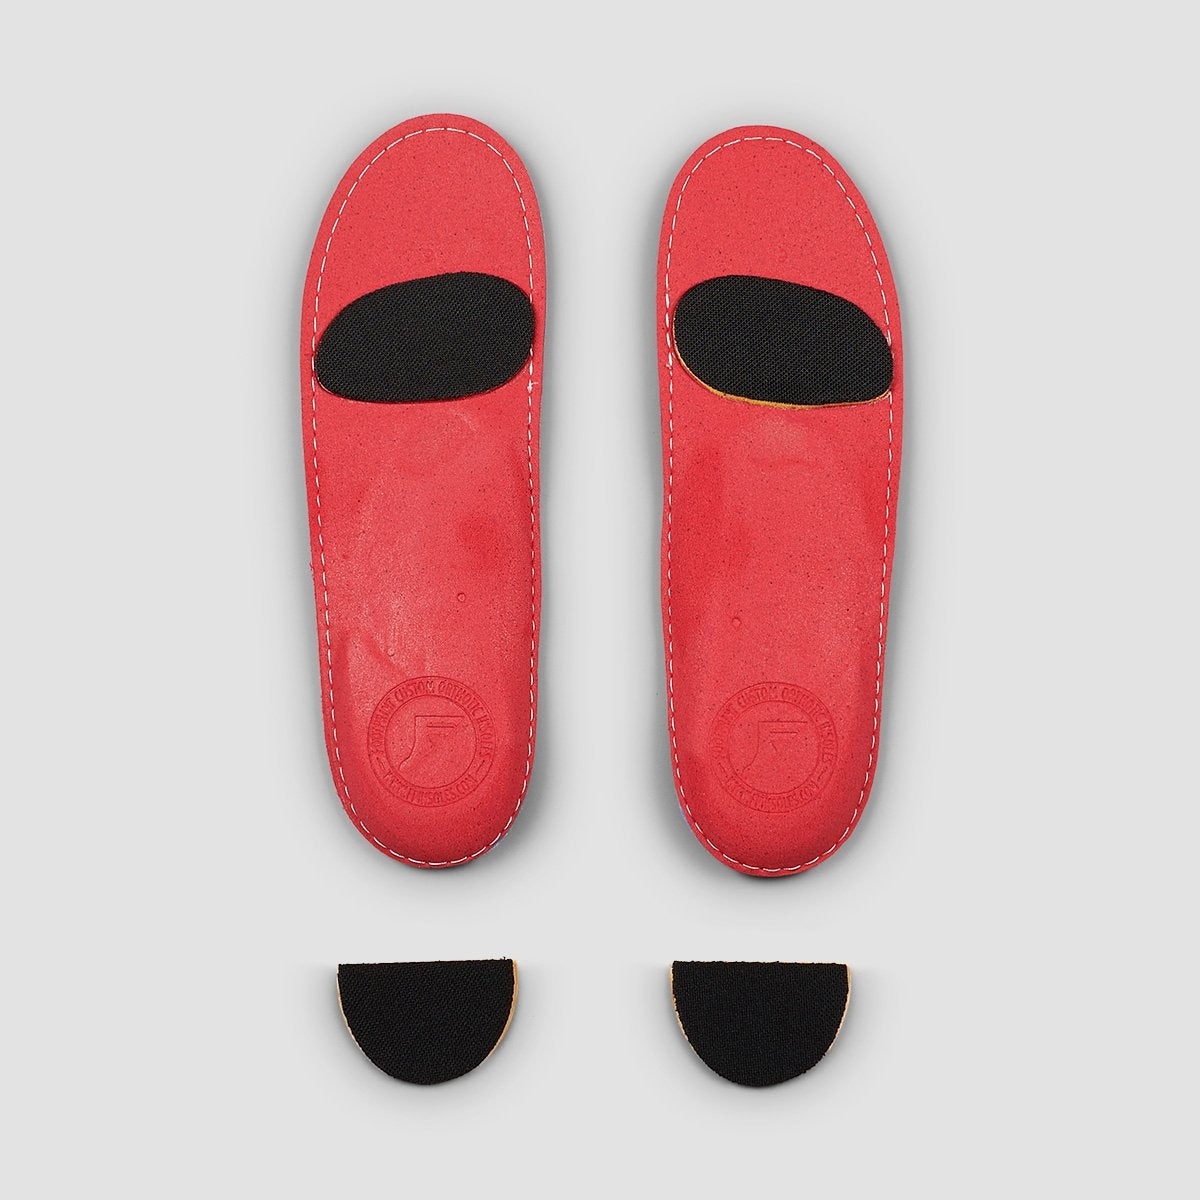 Footprint Gamechangers Insoles Great Tomorrow - Unisex L - Footwear